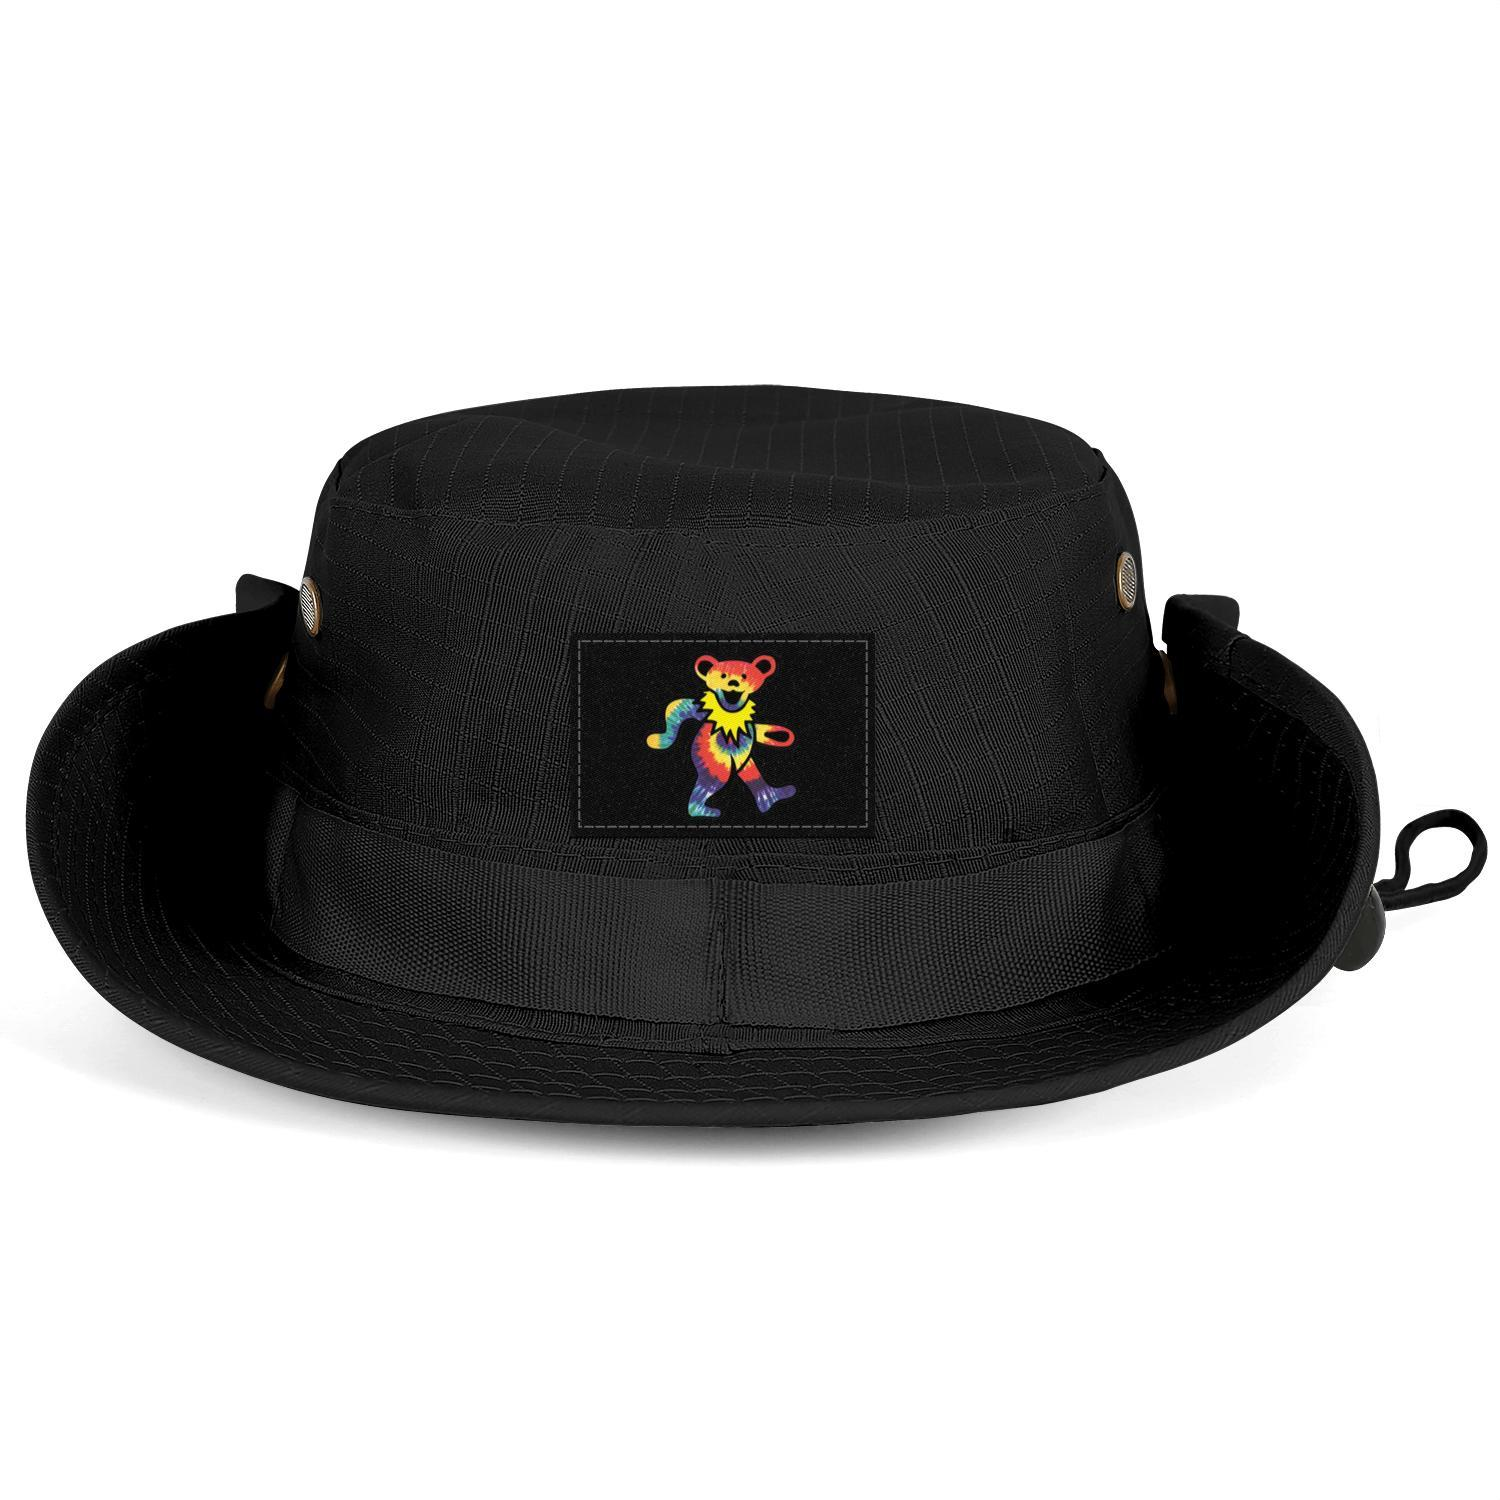 Rock The Grateful dead dancing bear Men Women Bucket Hat Summer Travel Visor Baseball Cap Adjustable Beach Fisherman grateful and rose